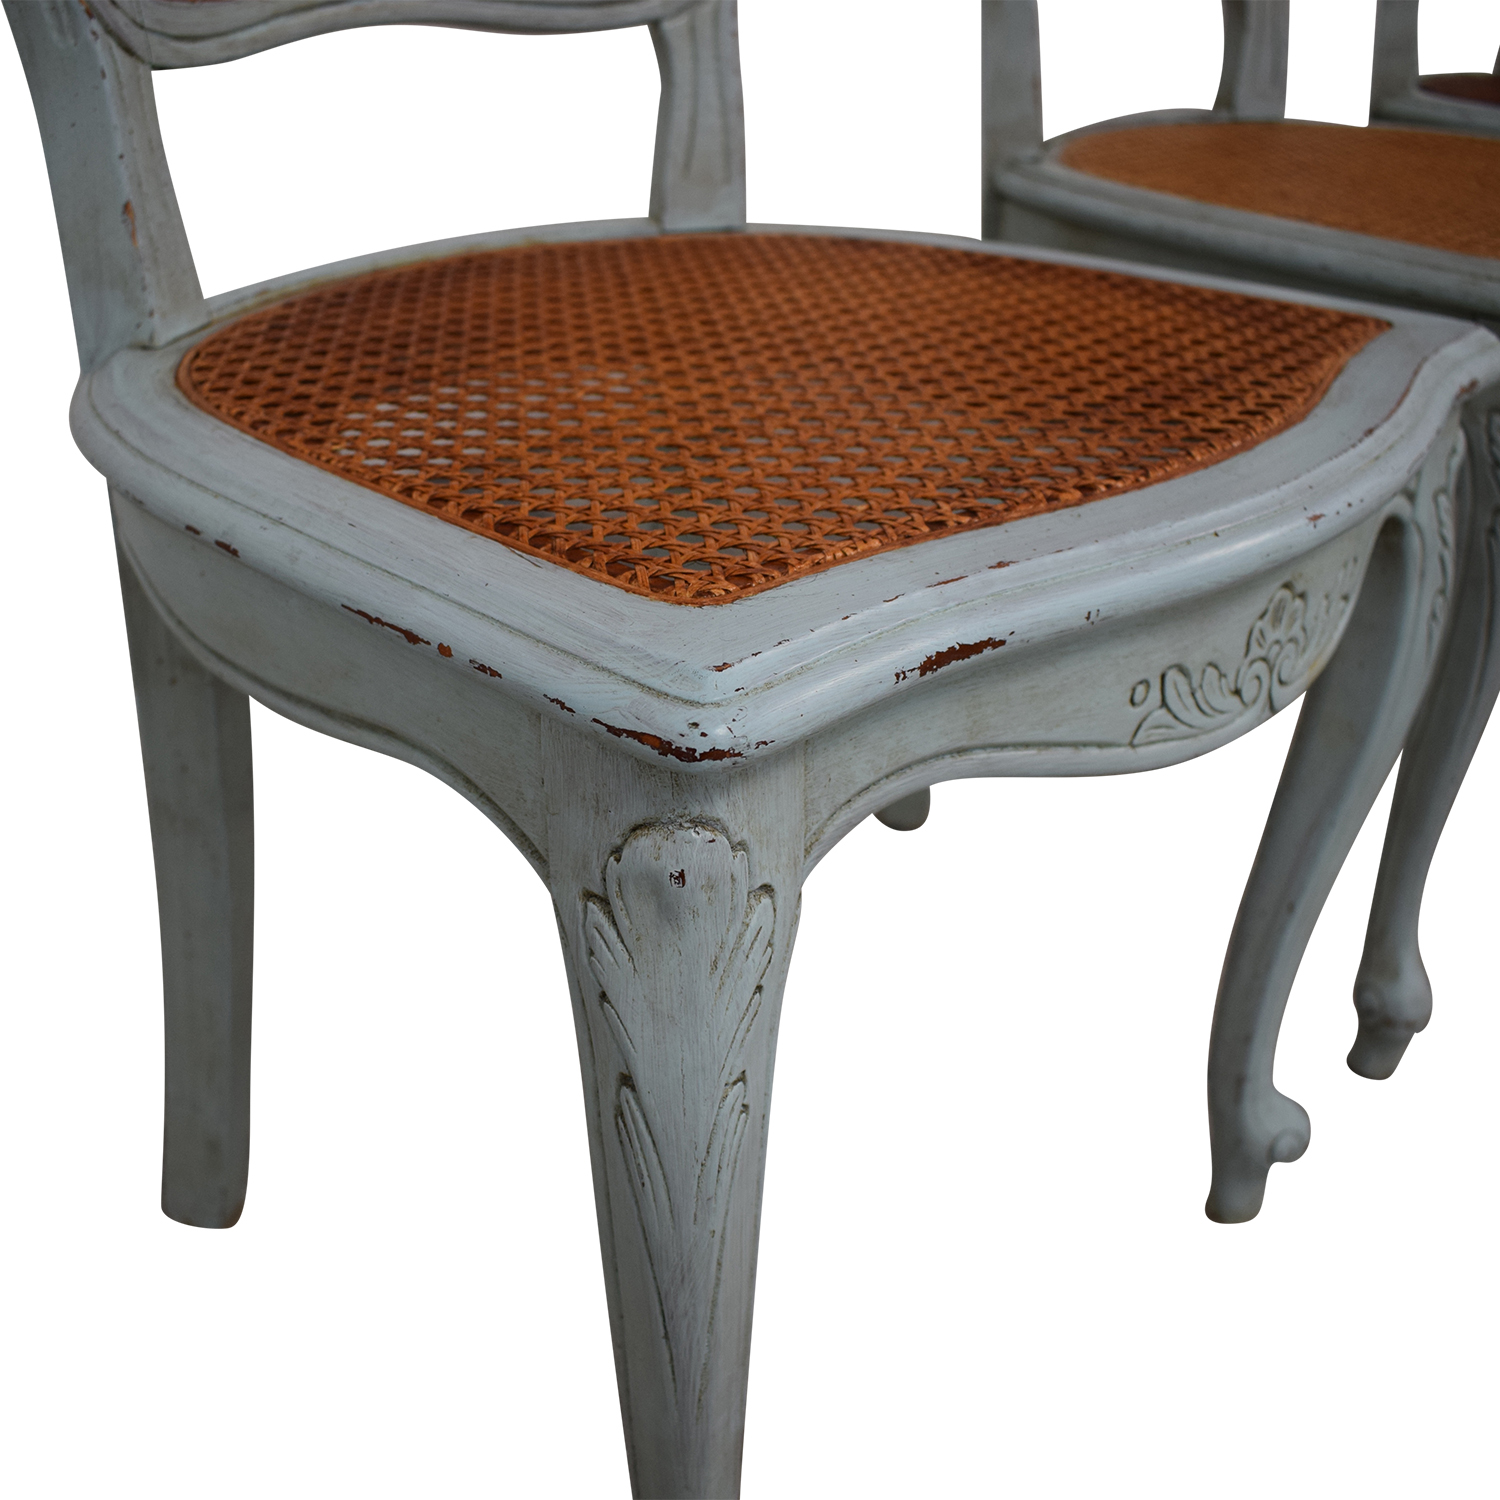 ABC Carpet & Home ABC Carpet & Home French Wicker Chairs on sale